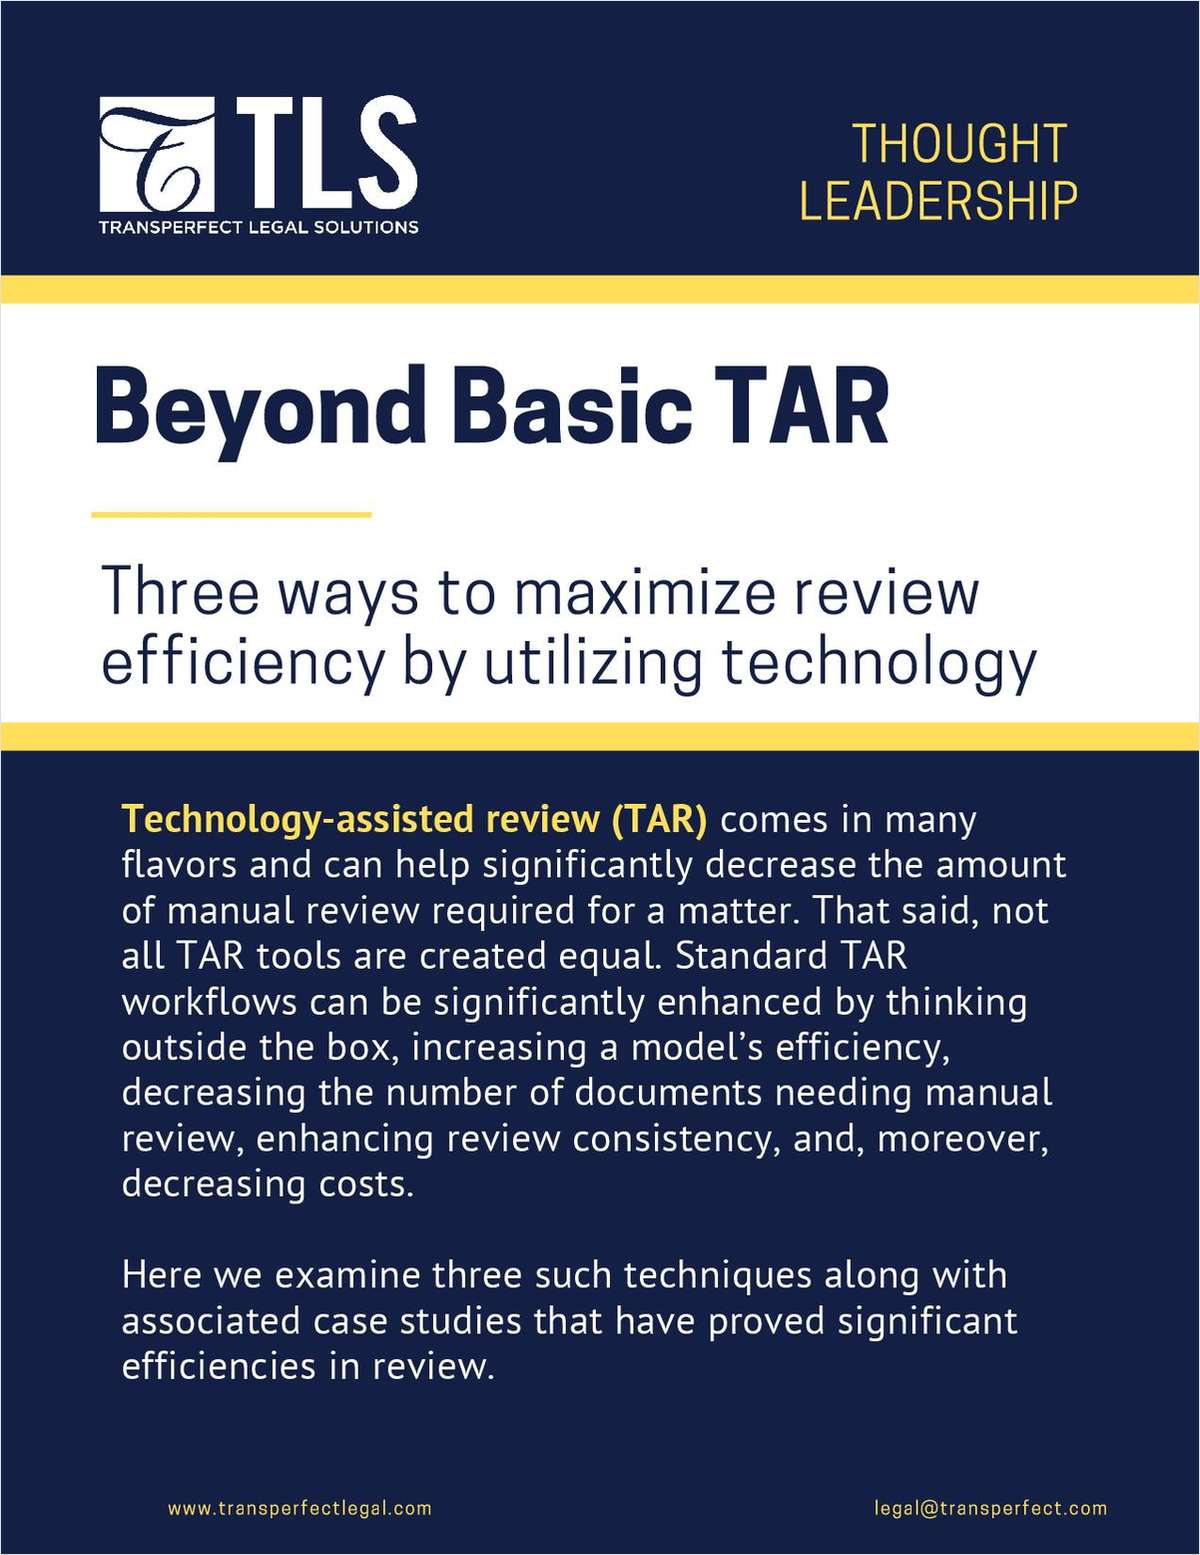 Beyond Basic TAR: 3 Ways to Maximize Review Efficiency by Utilizing Technology